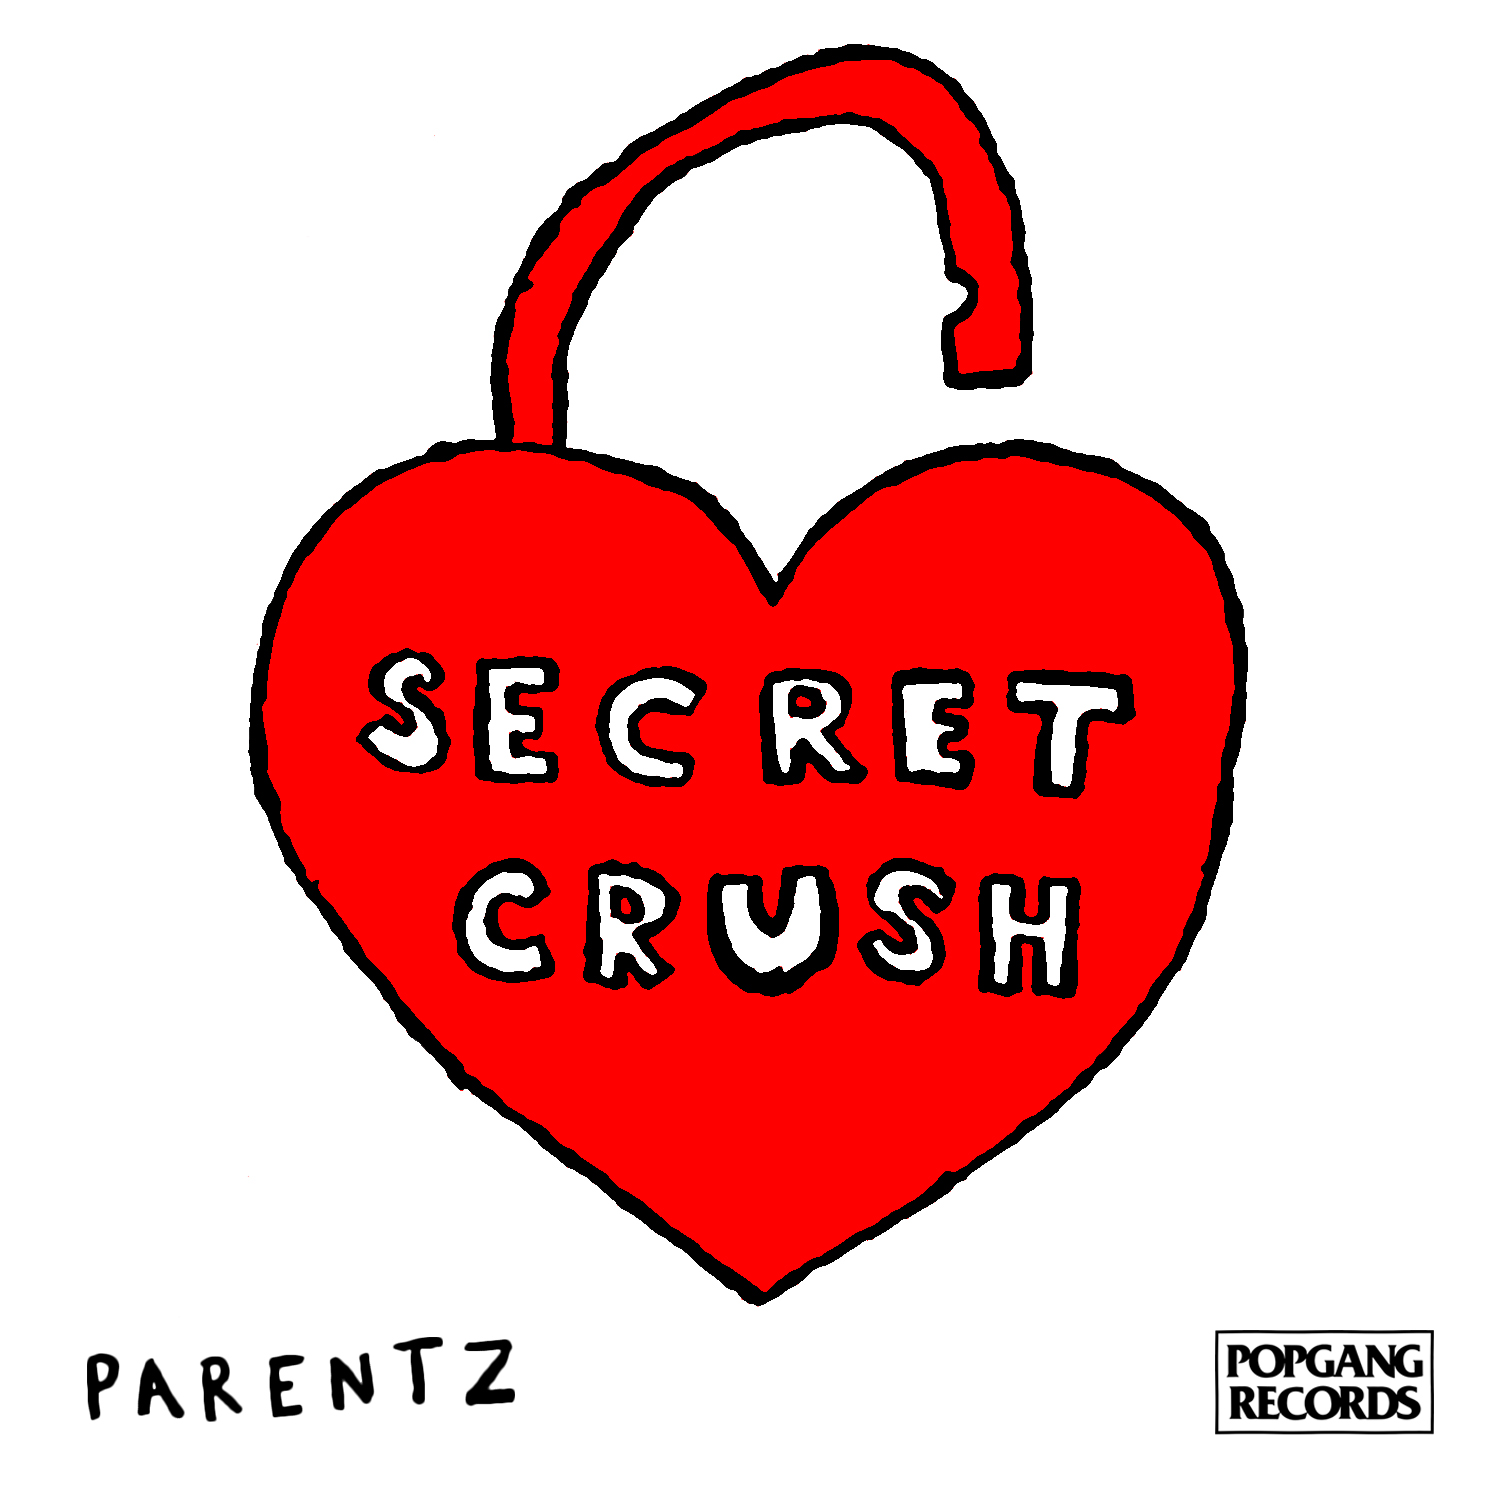 PARENTZ_SECRETCRUSH_ART_blackonredwwhite copy.jpg